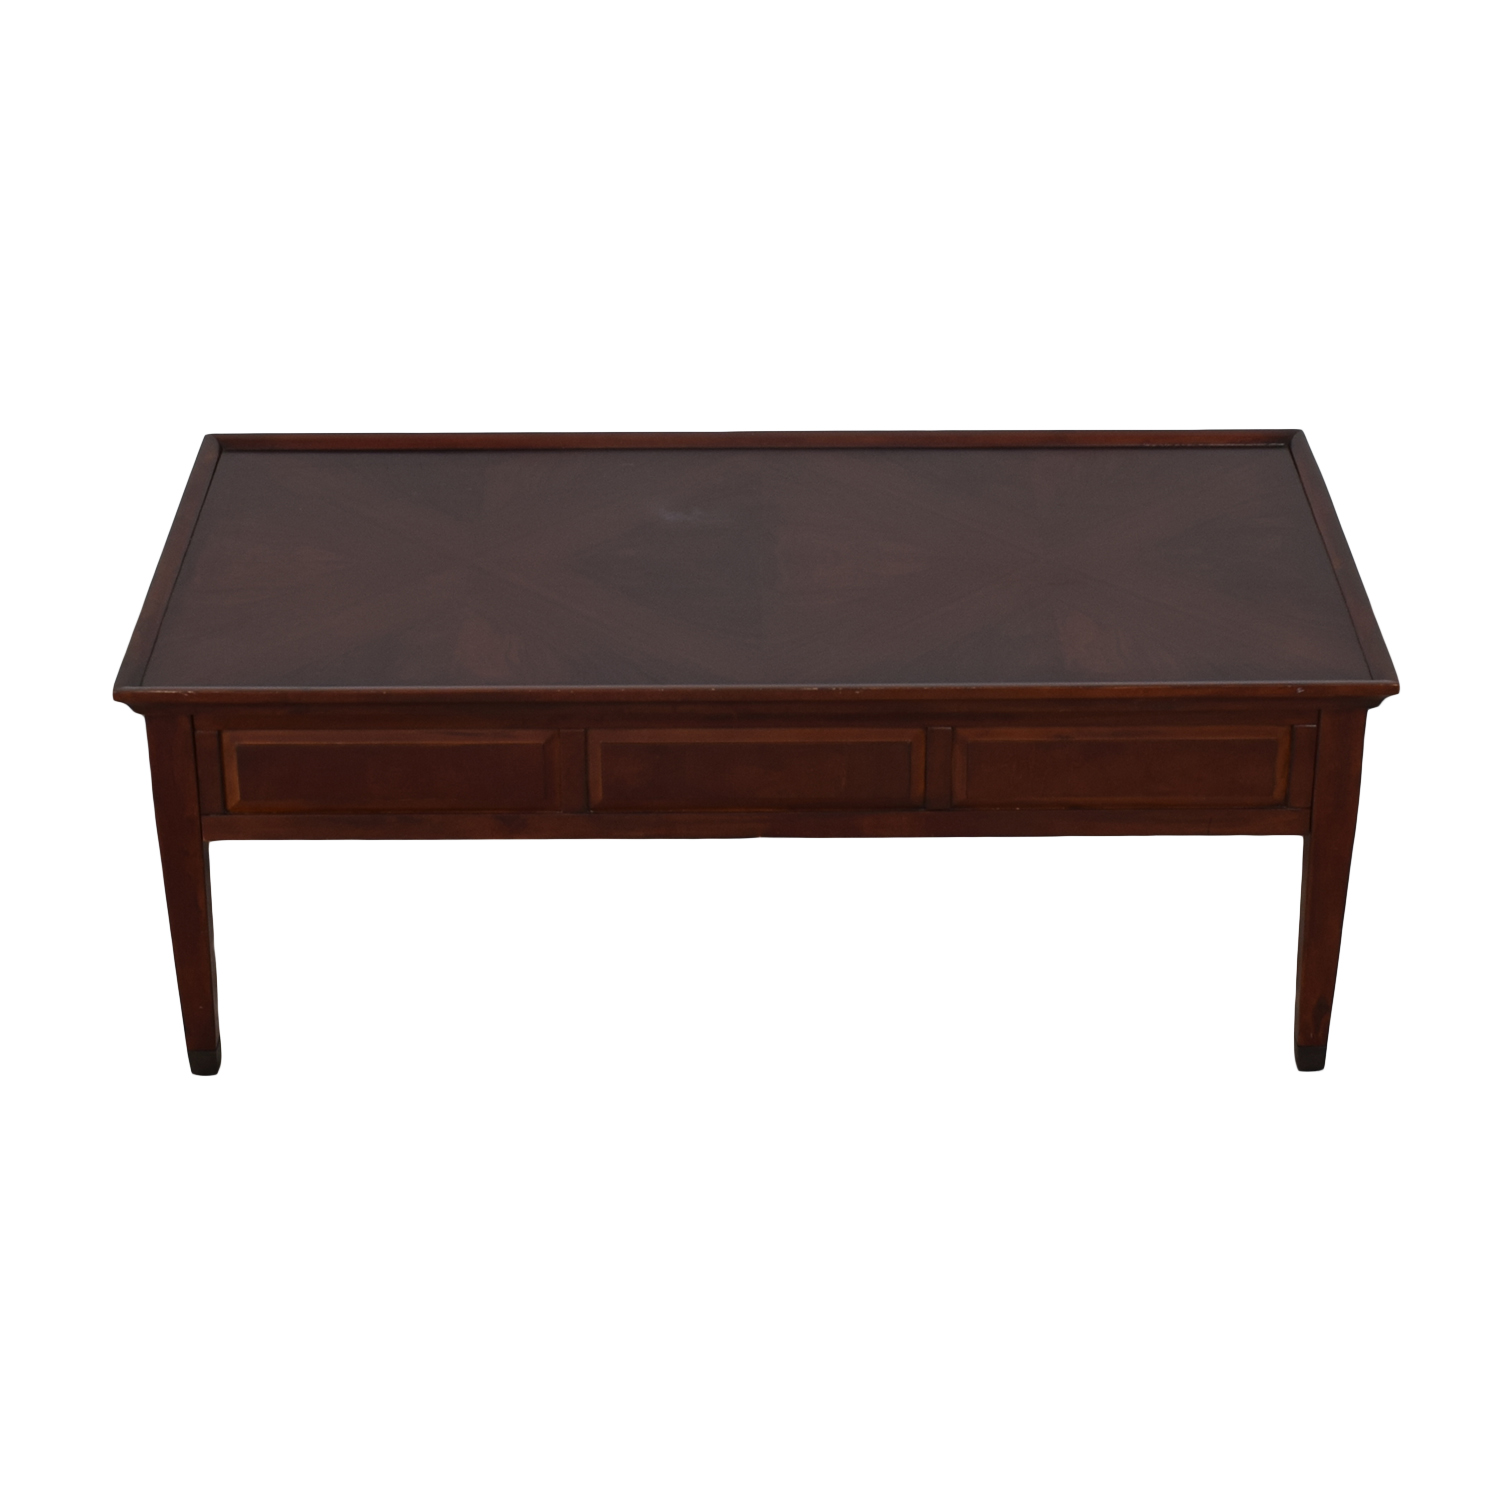 Hammary Furniture Hammary Furniture Coffee Table with Storage dimensions